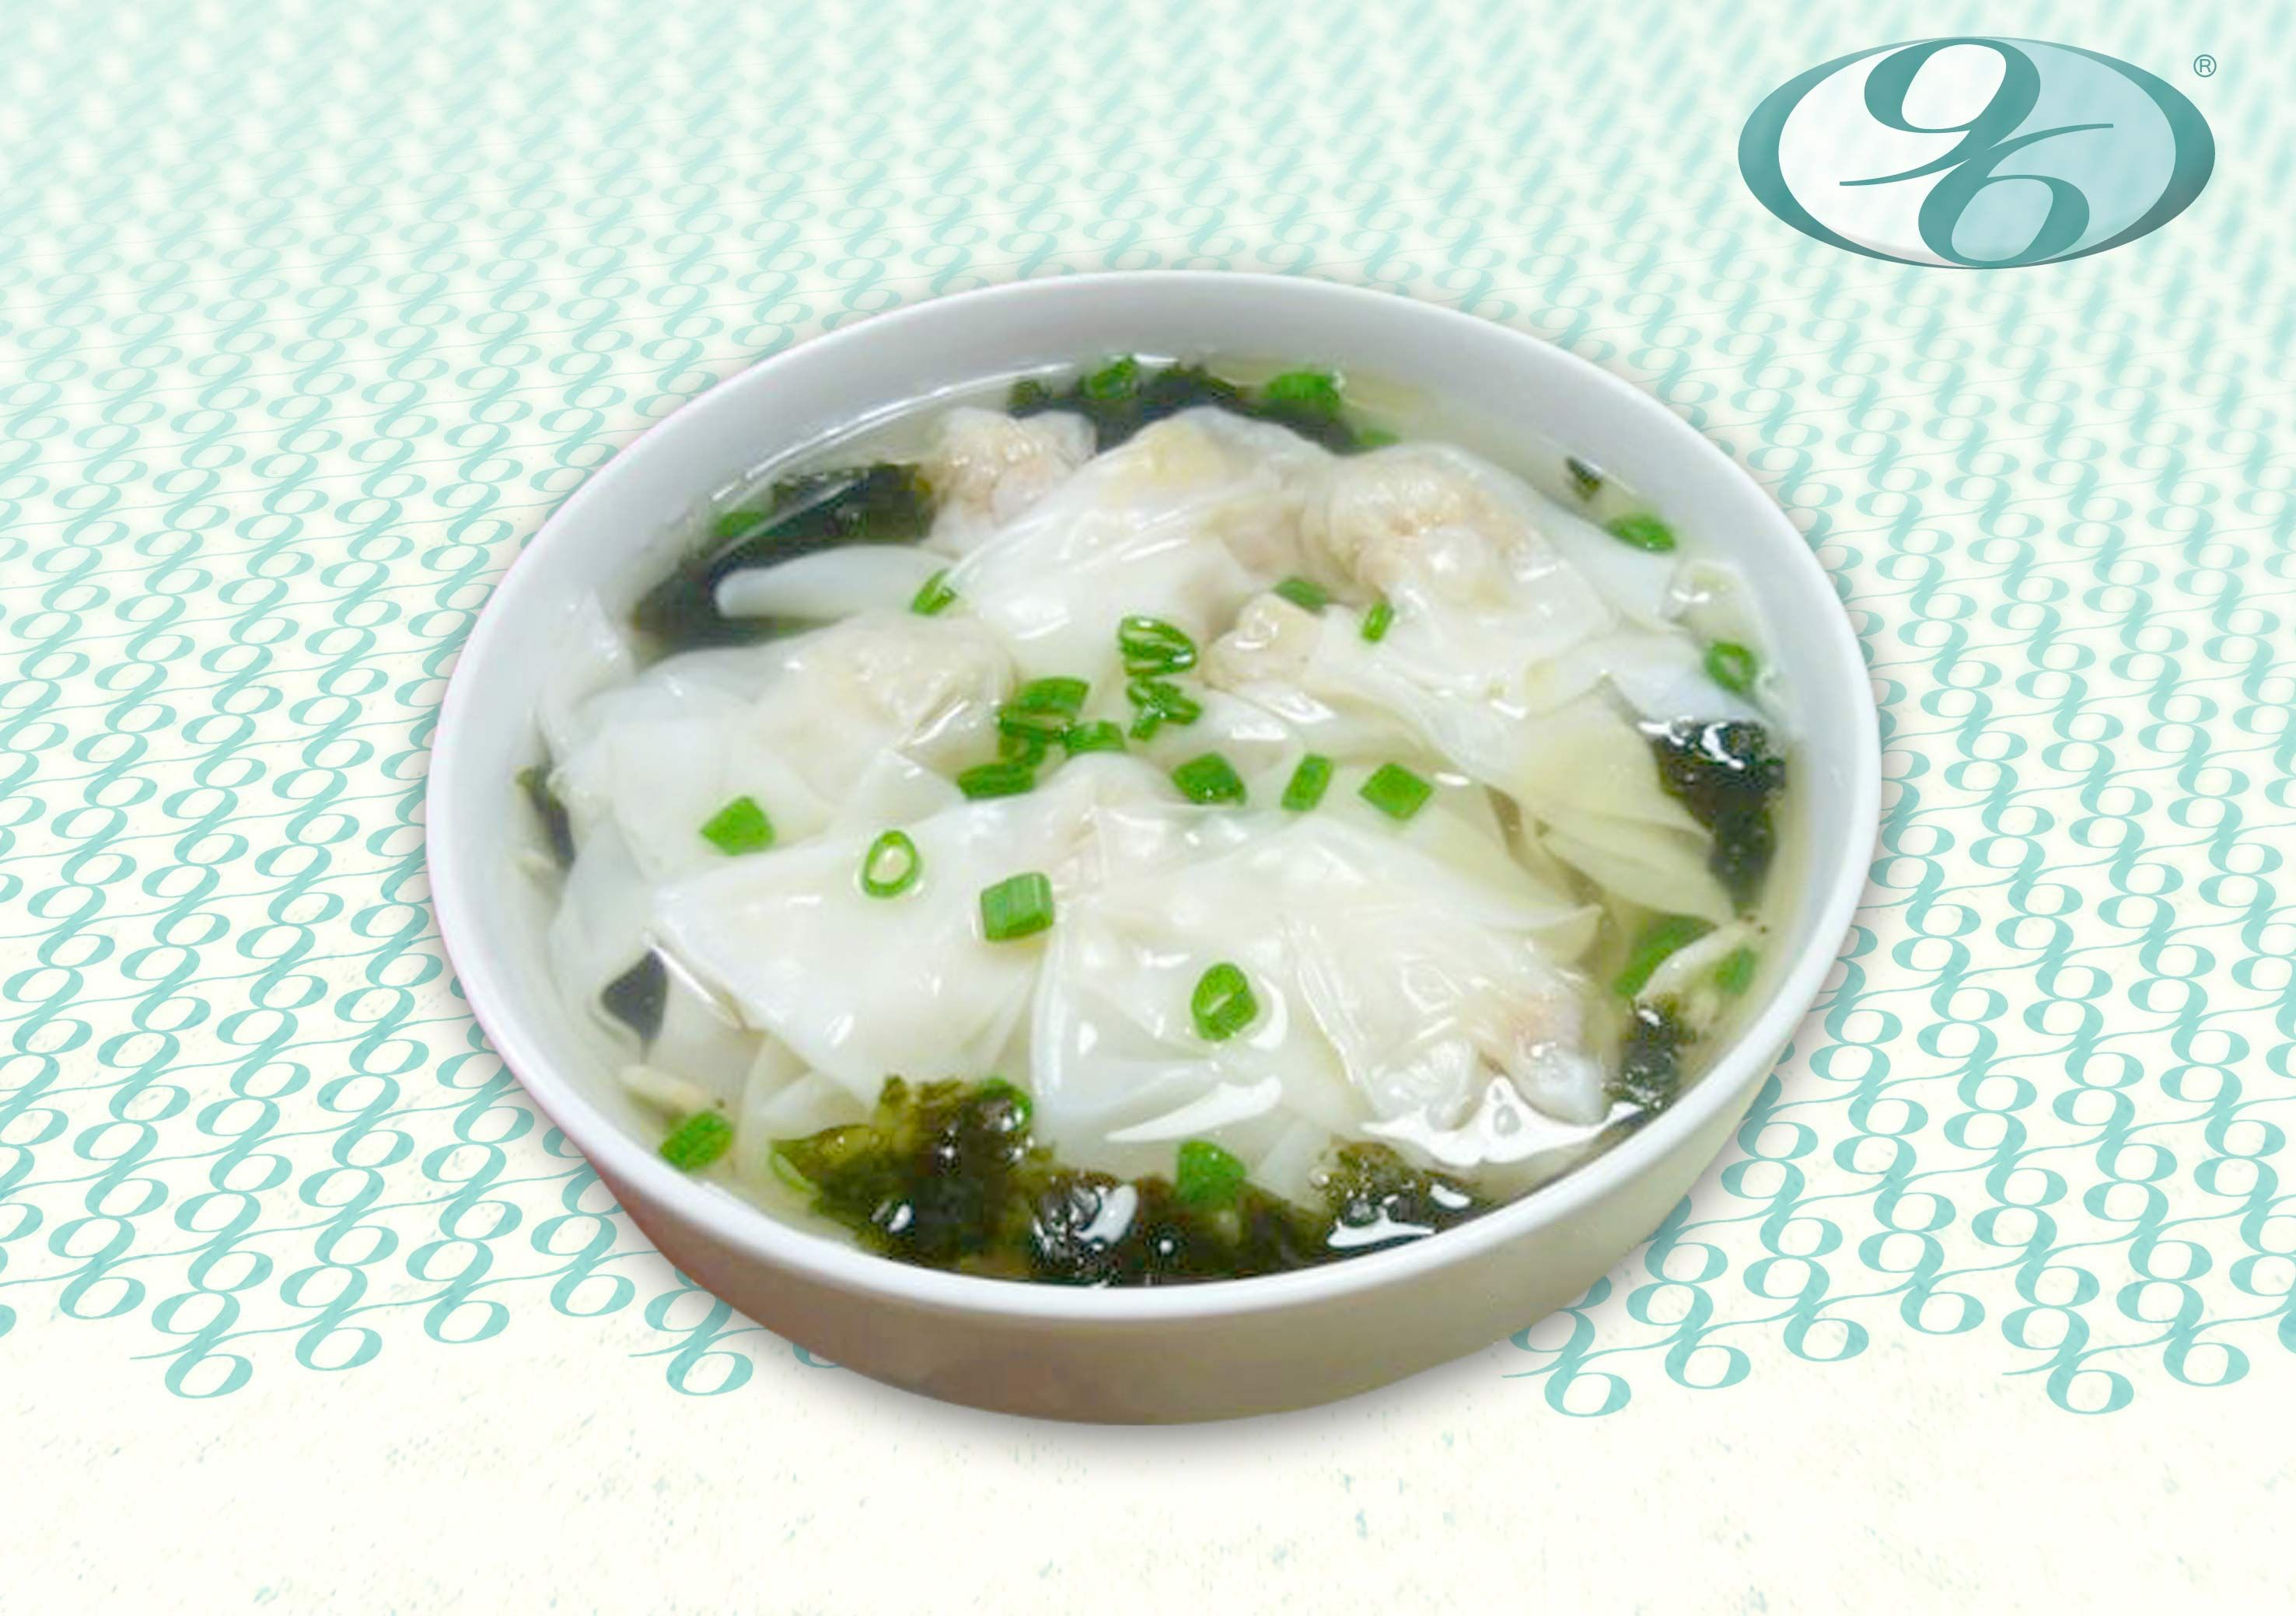 Yangs style wonton soup recipe at chinese960 authentic yangs style wonton soup recipe at chinese960 authentic chinese food recipe forumfinder Image collections